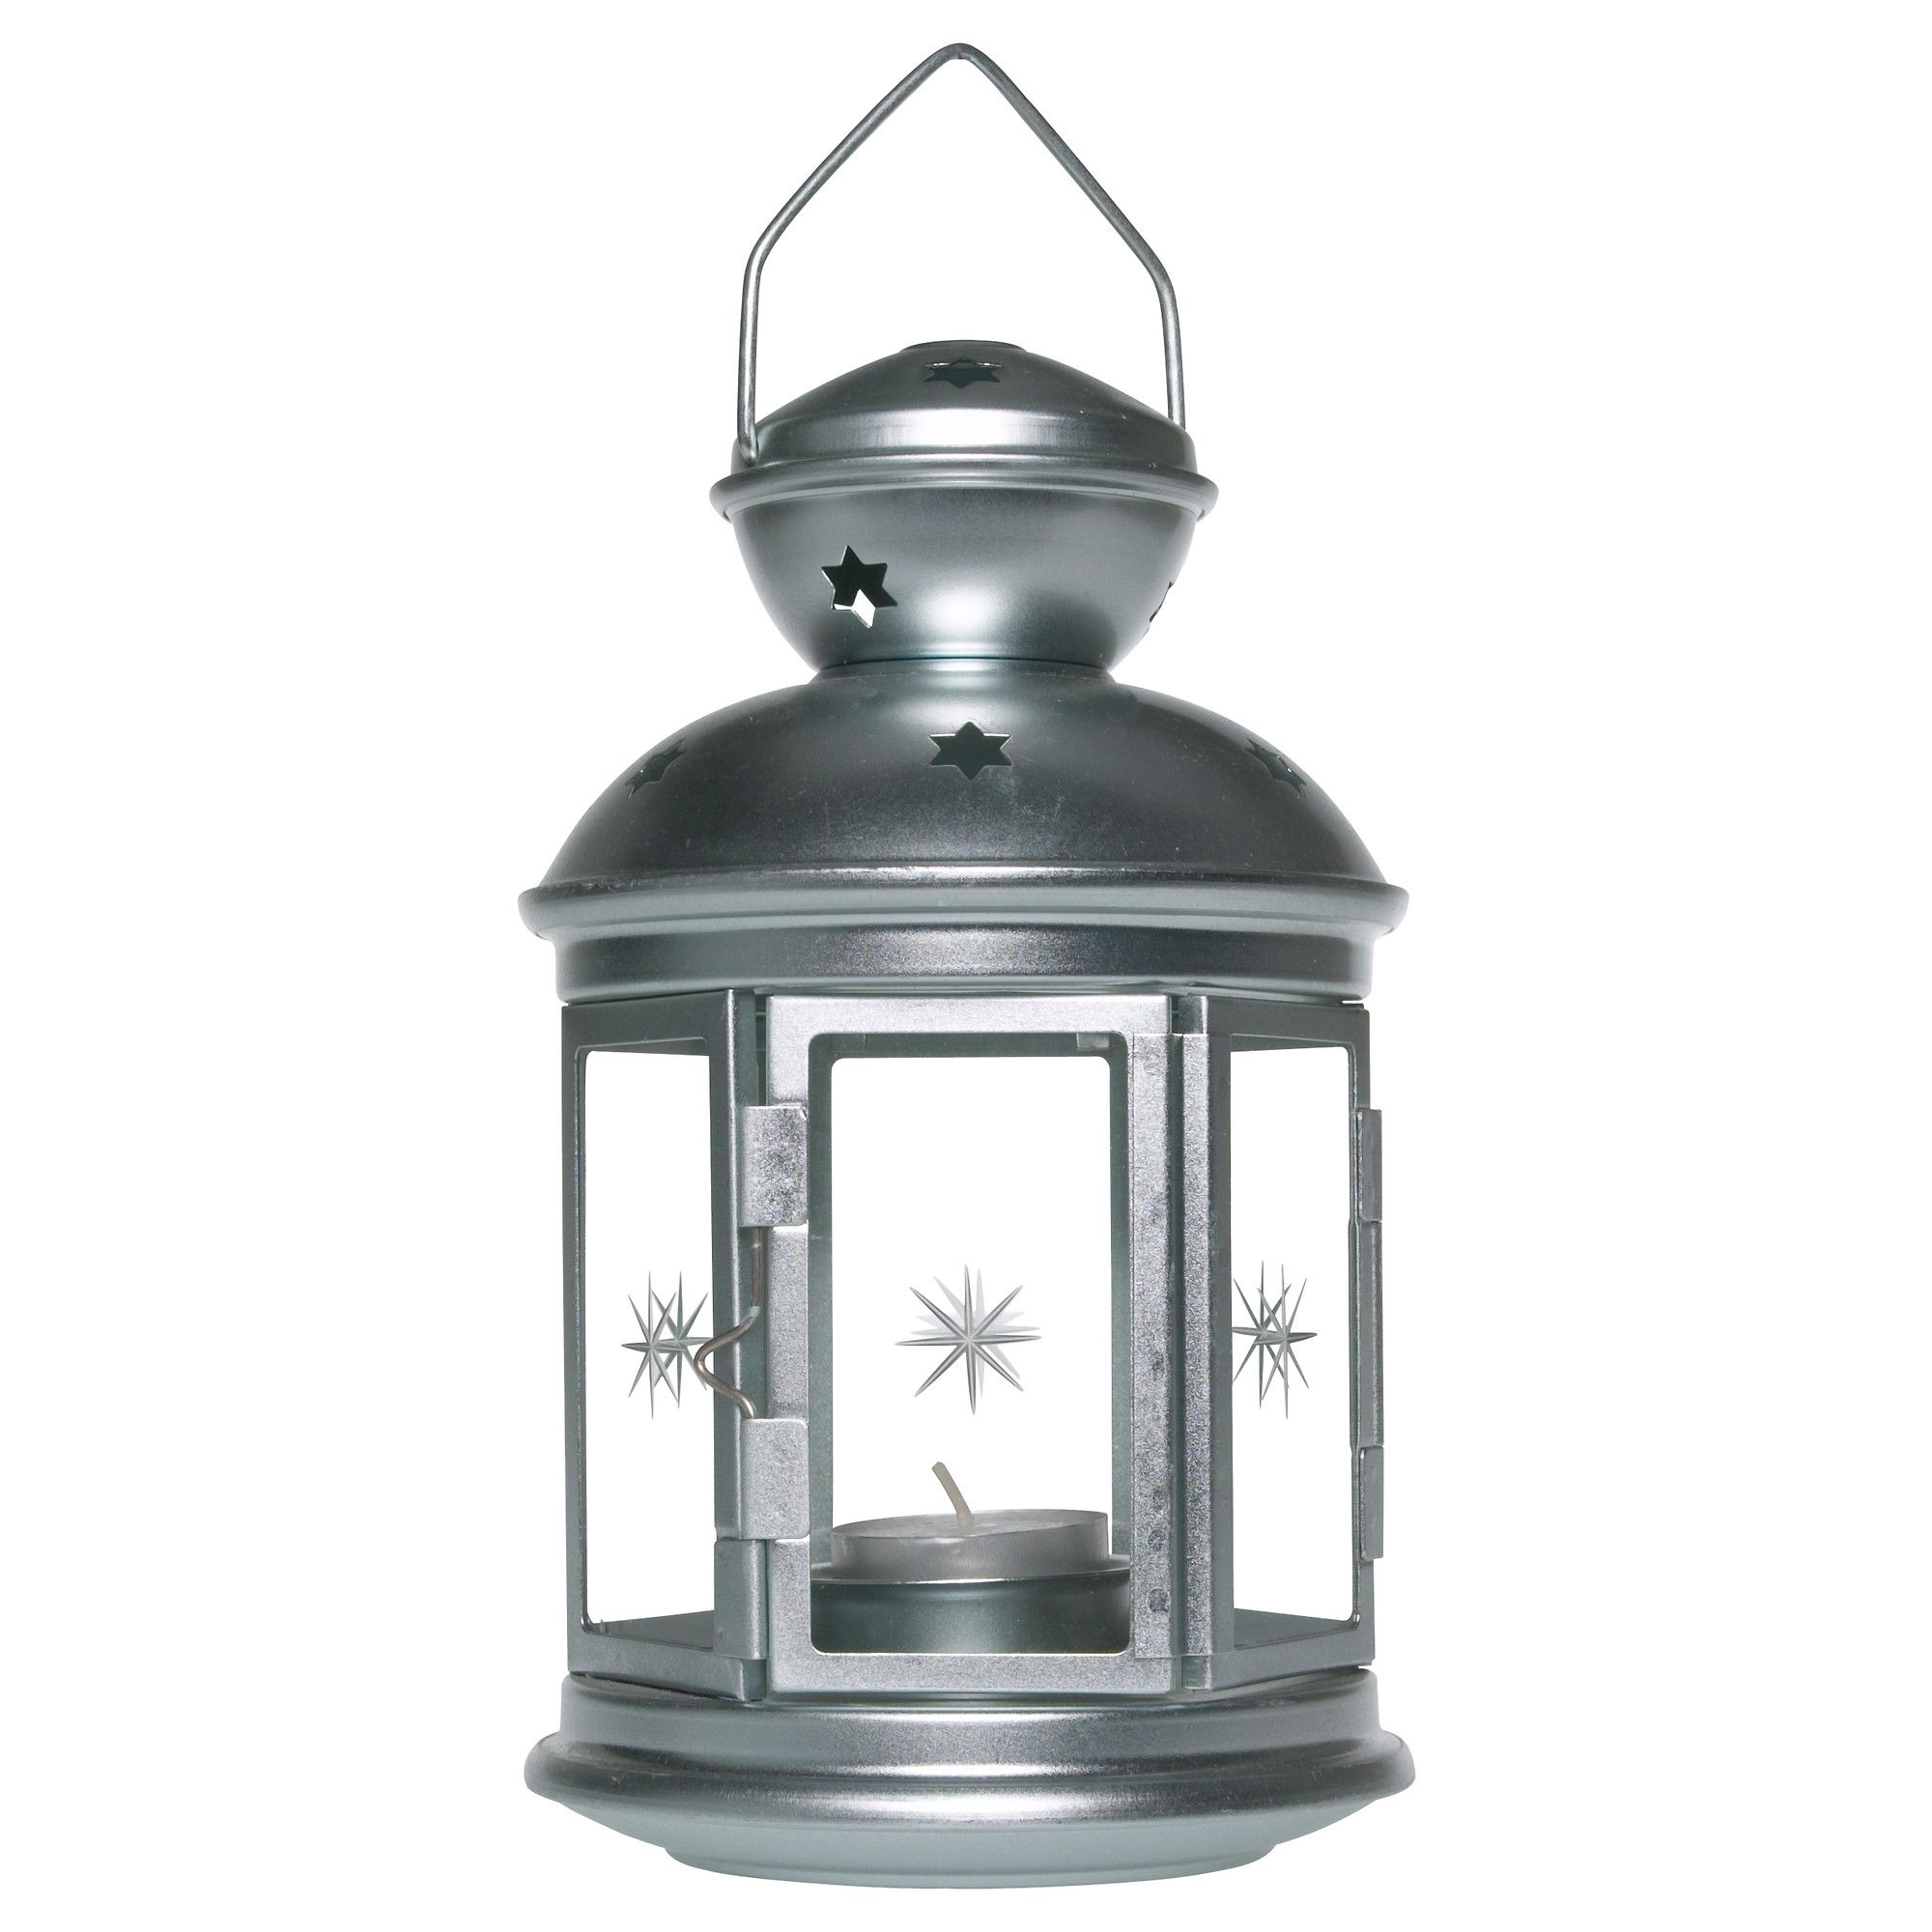 Ikea Outdoor Lanterns For Most Current Rotera Lantern For Tealight, Galvanized Indoor/outdoor Galvanized (View 6 of 20)